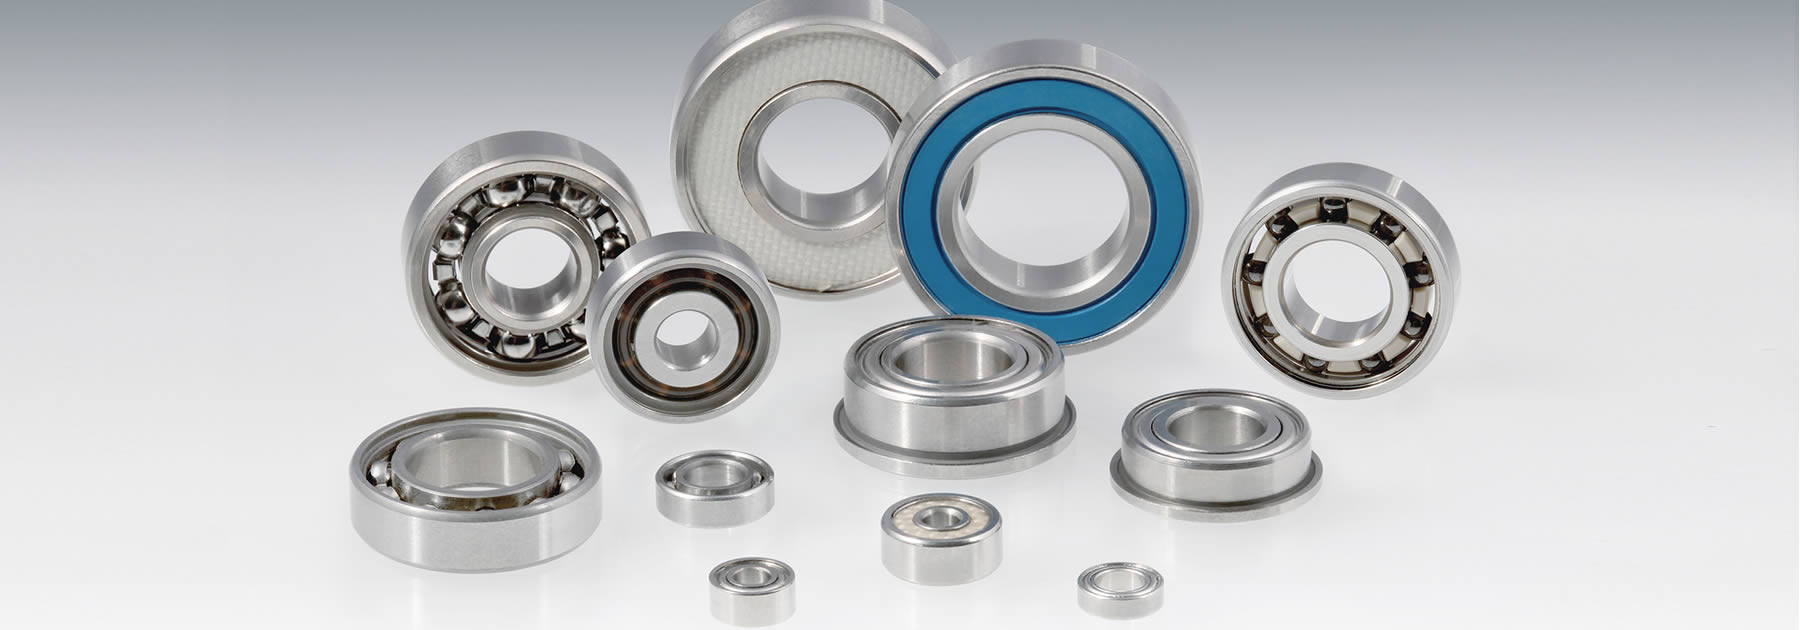 HQW Bearings - Product Range